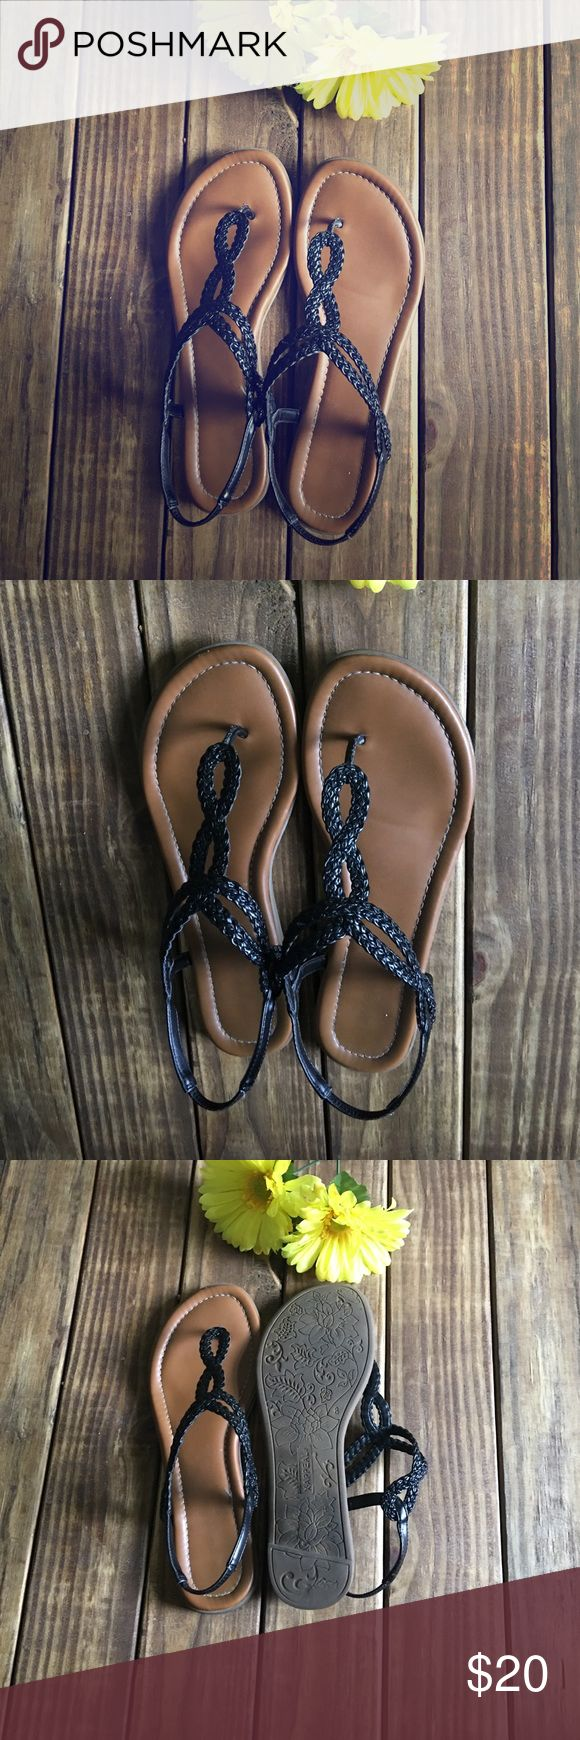 🌼Black Rope Sandals🌼 Xappeal Akia Women's Shoe Summertime sweeties will love the sassy-chic style of the Akia women's shoe from Xappeal! This sleek sandal updates the classic gladiator silhouette with bold, braided straps for a touch of trendy texture.  Stretchy ankle strap Xappeal Shoes Sandals